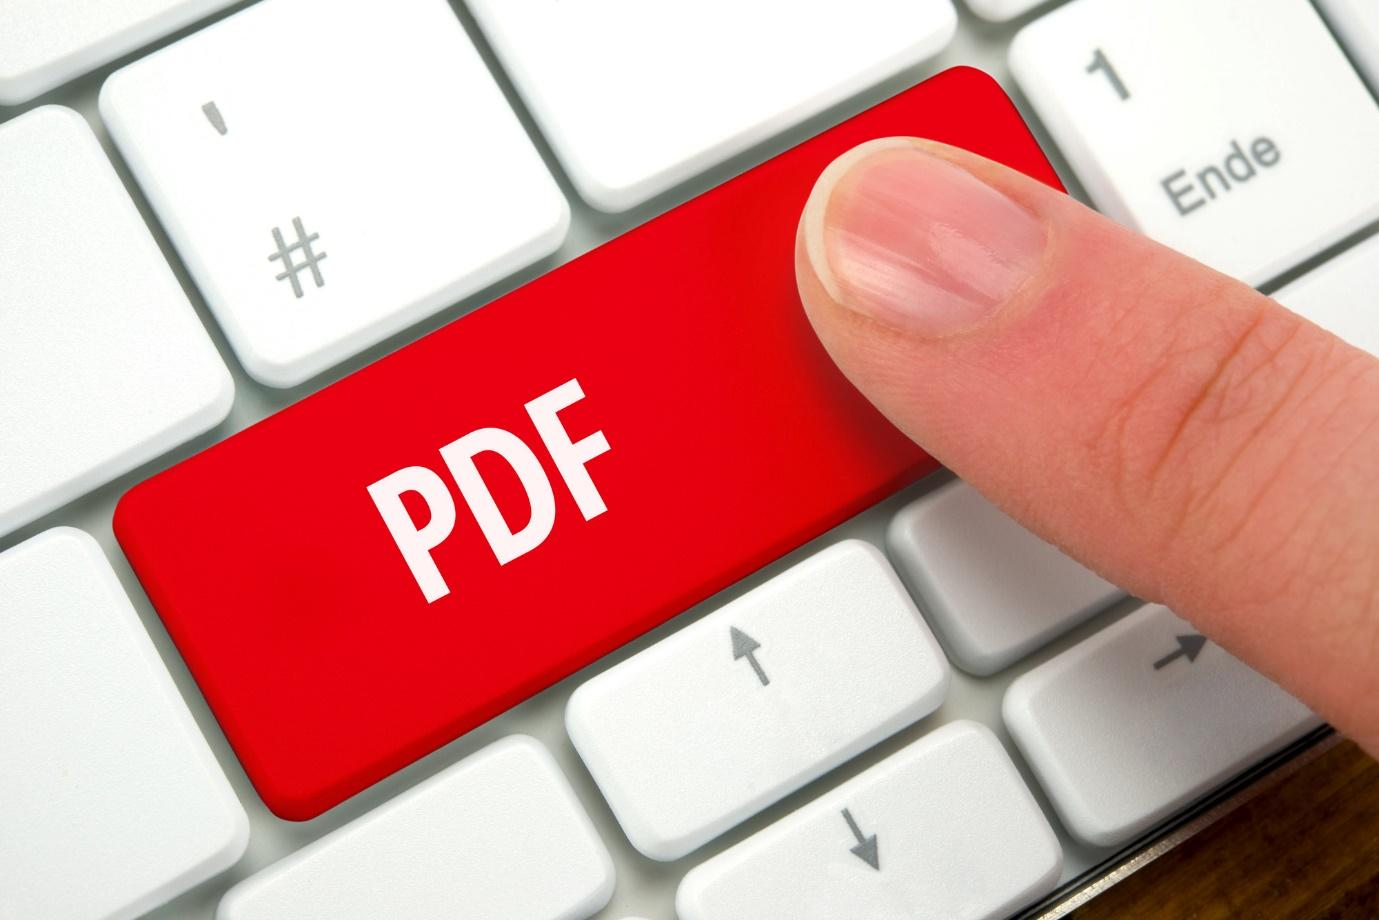 The Ultimate PDF Guide: Everything You Need to Know About PDFs